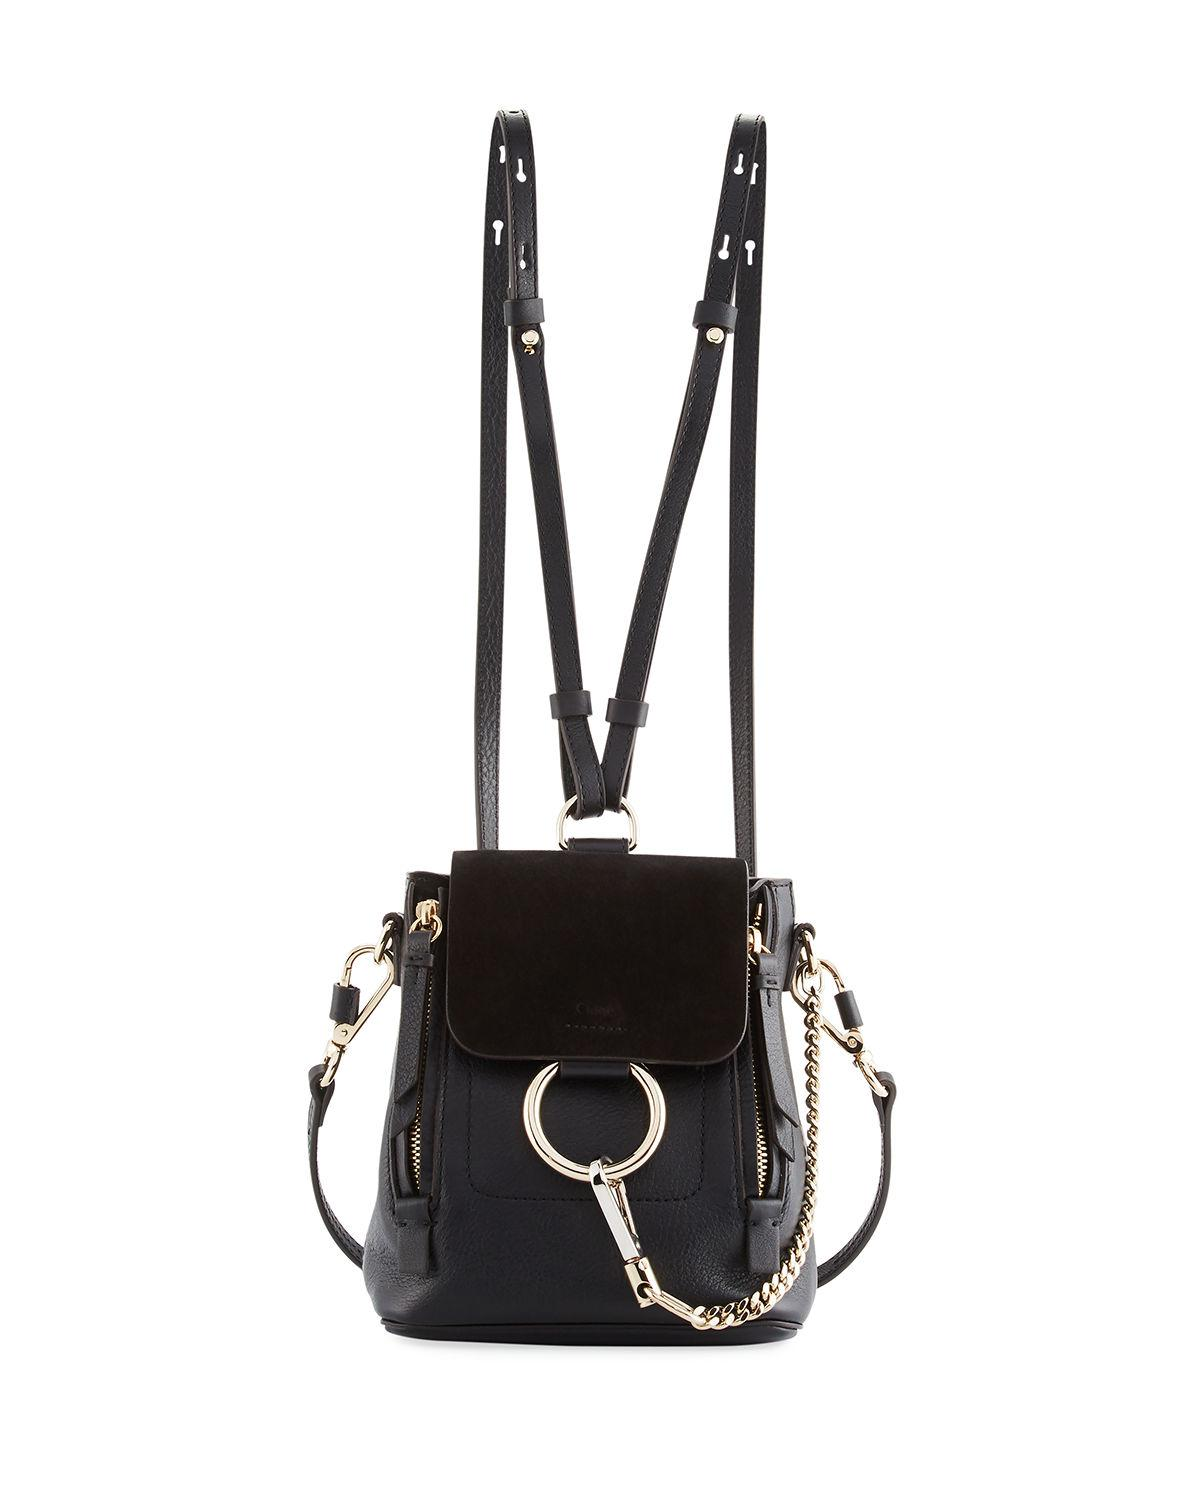 6a3720d4a20a Lyst - Chloé Faye Mini Leather suede Backpack in Black - Save 29%